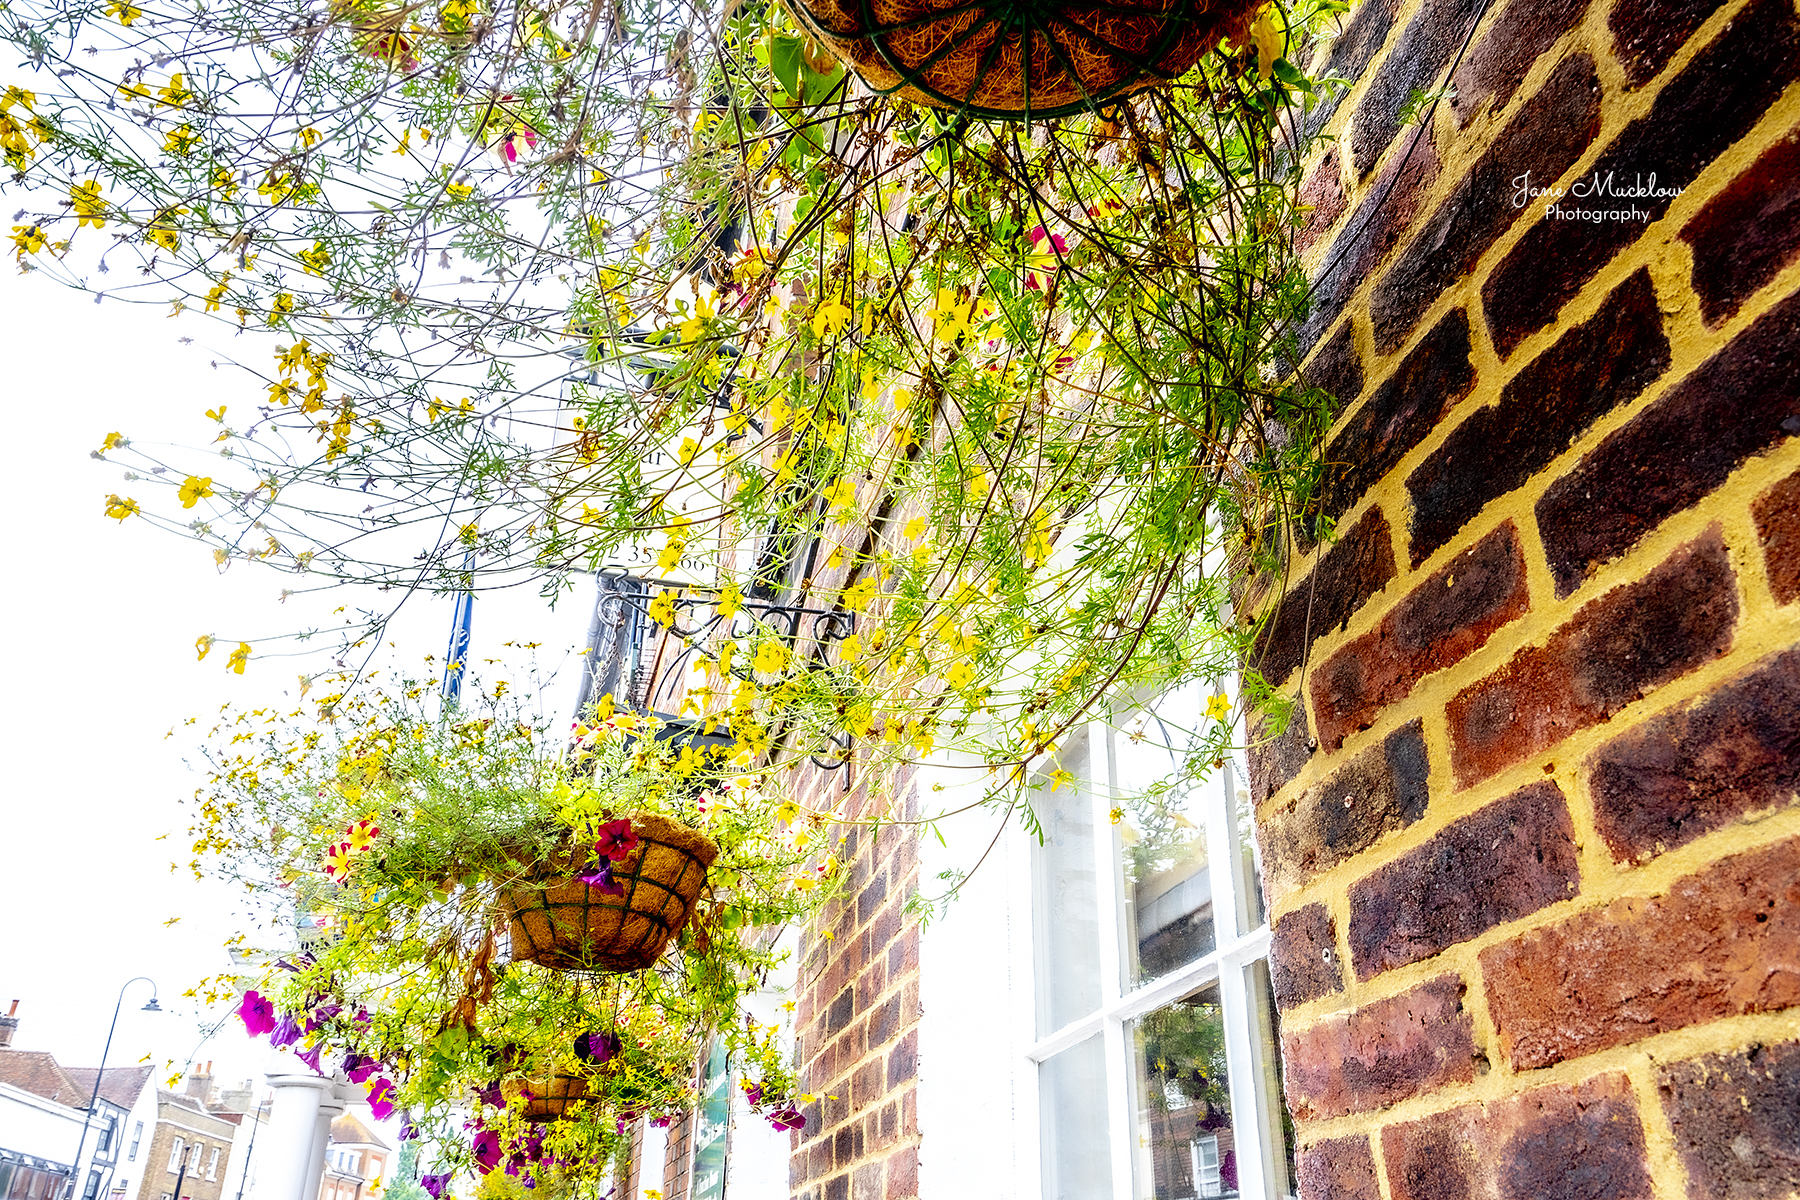 Photo of flower baskets at the Rose & Crown hotel, Tonbridge High Street, by Jane Mucklow